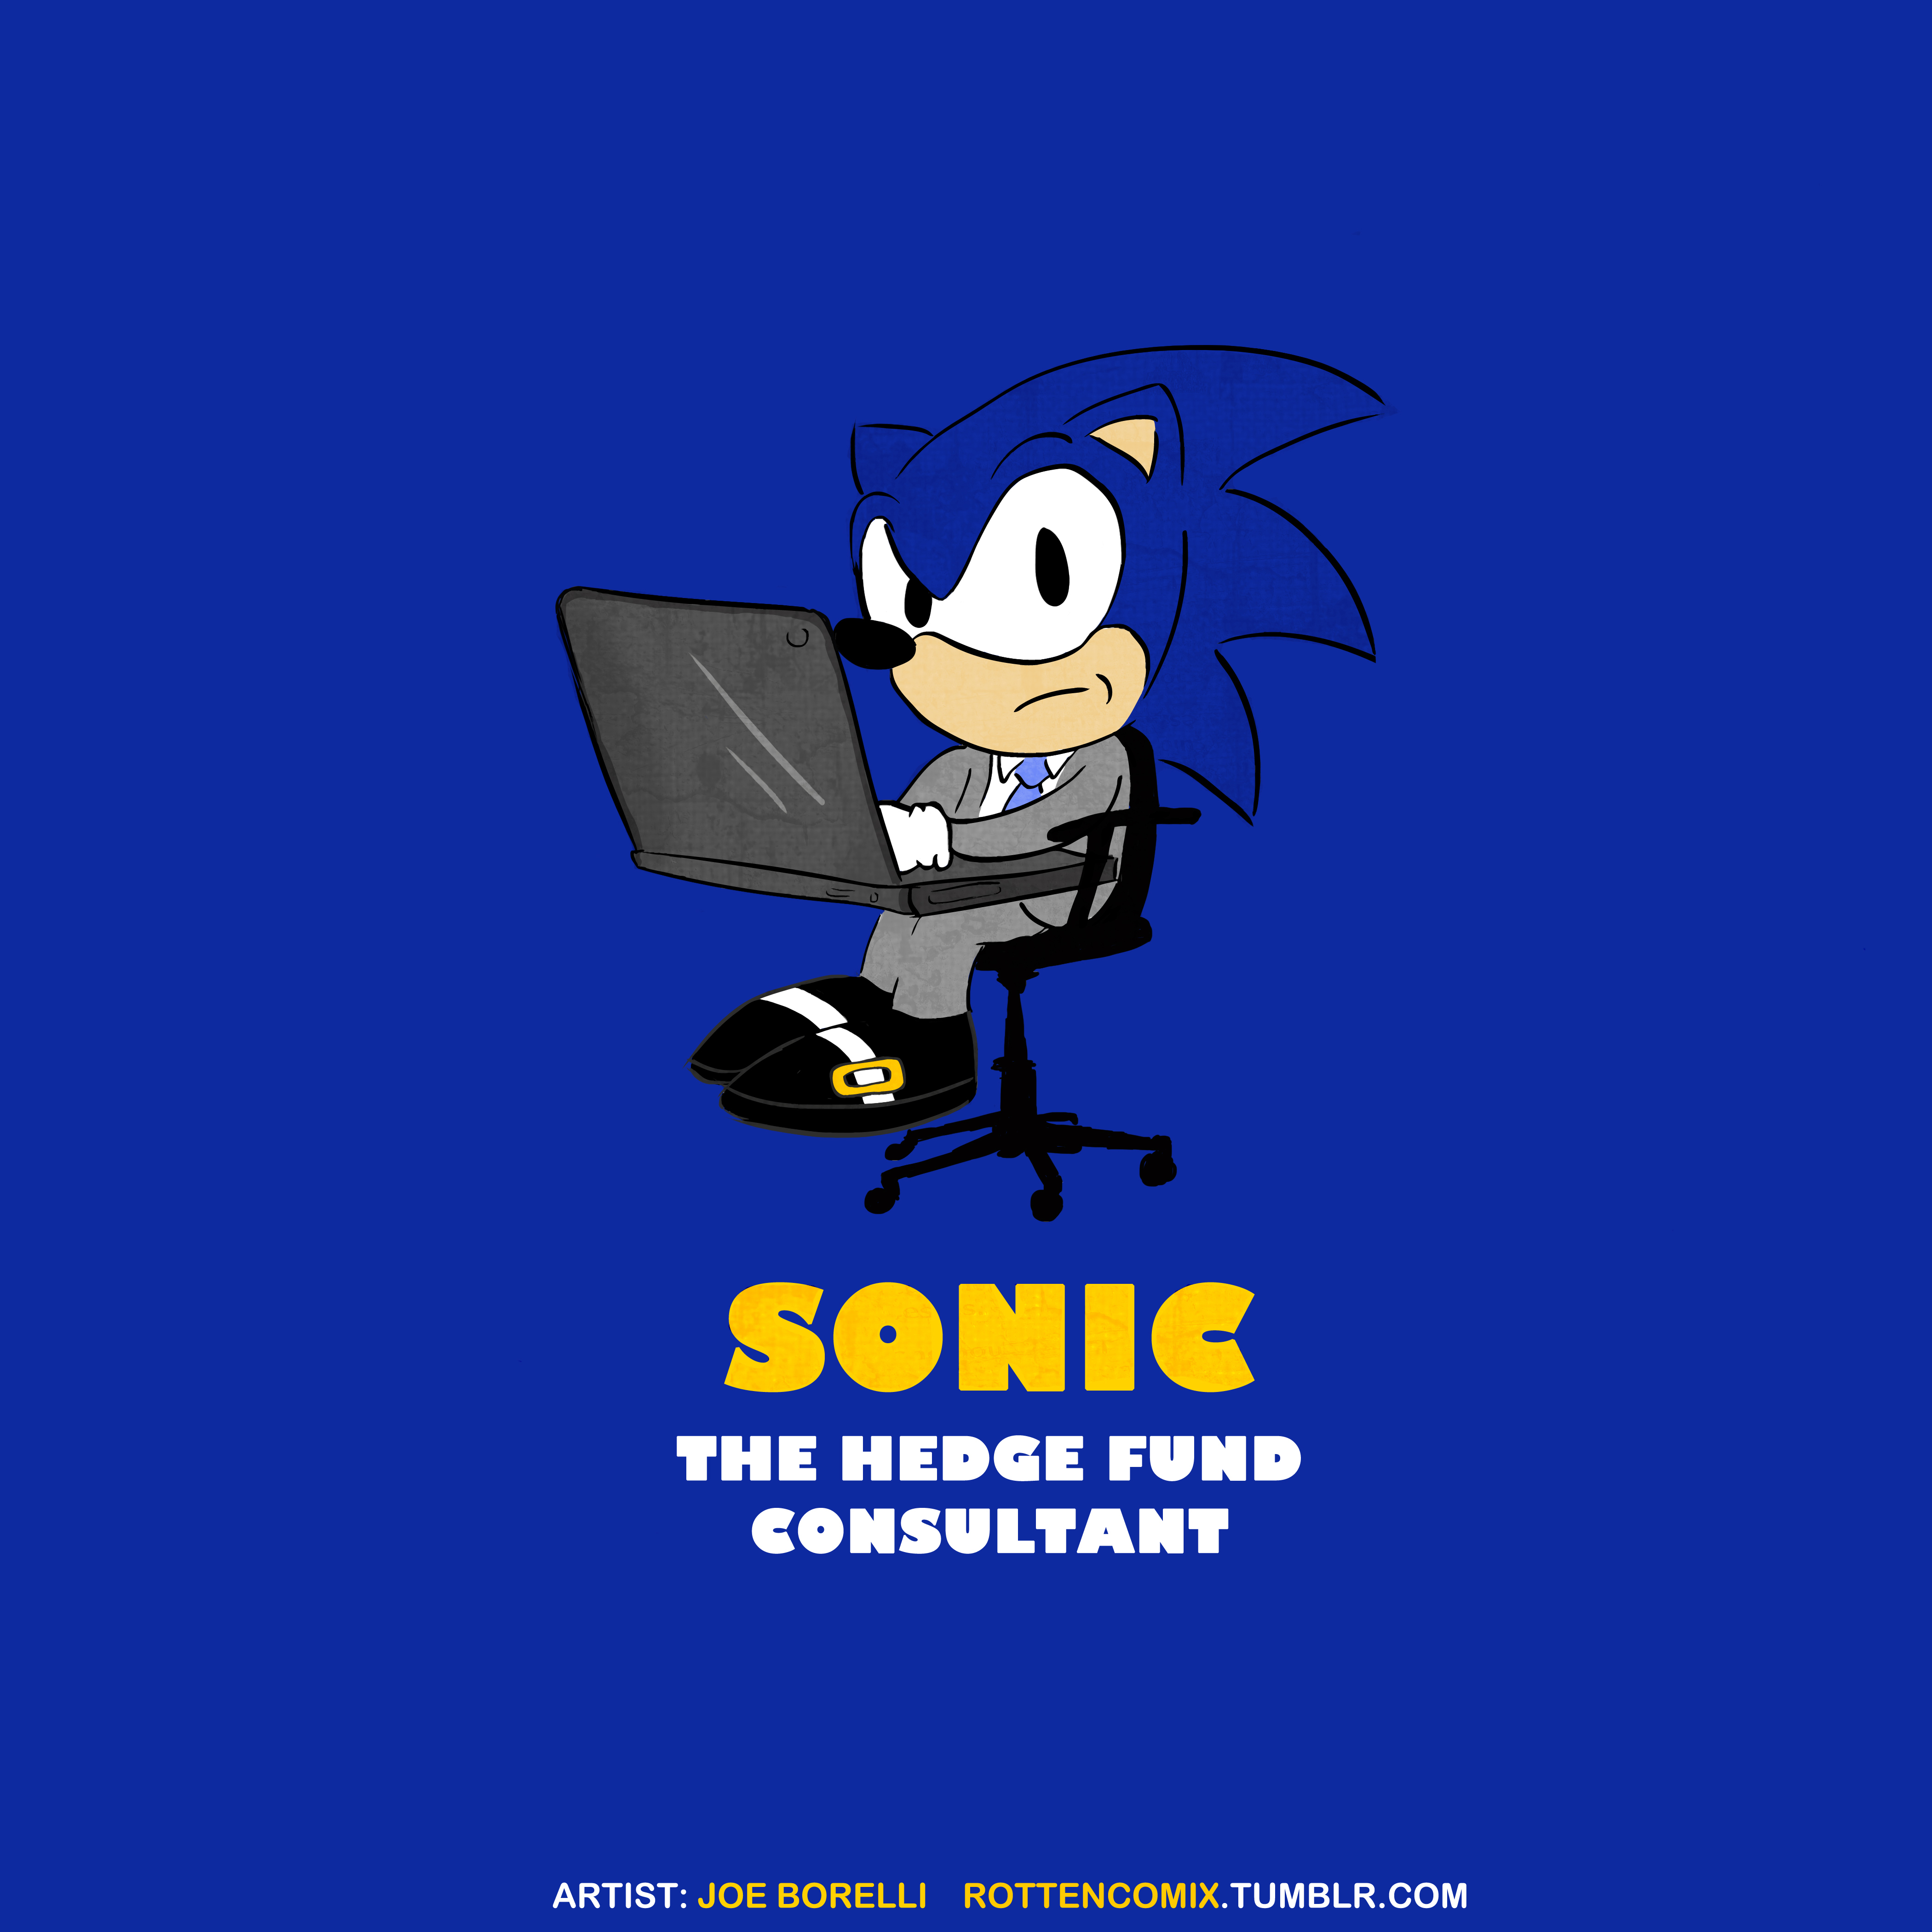 Sonic the HedgeFund Consultant